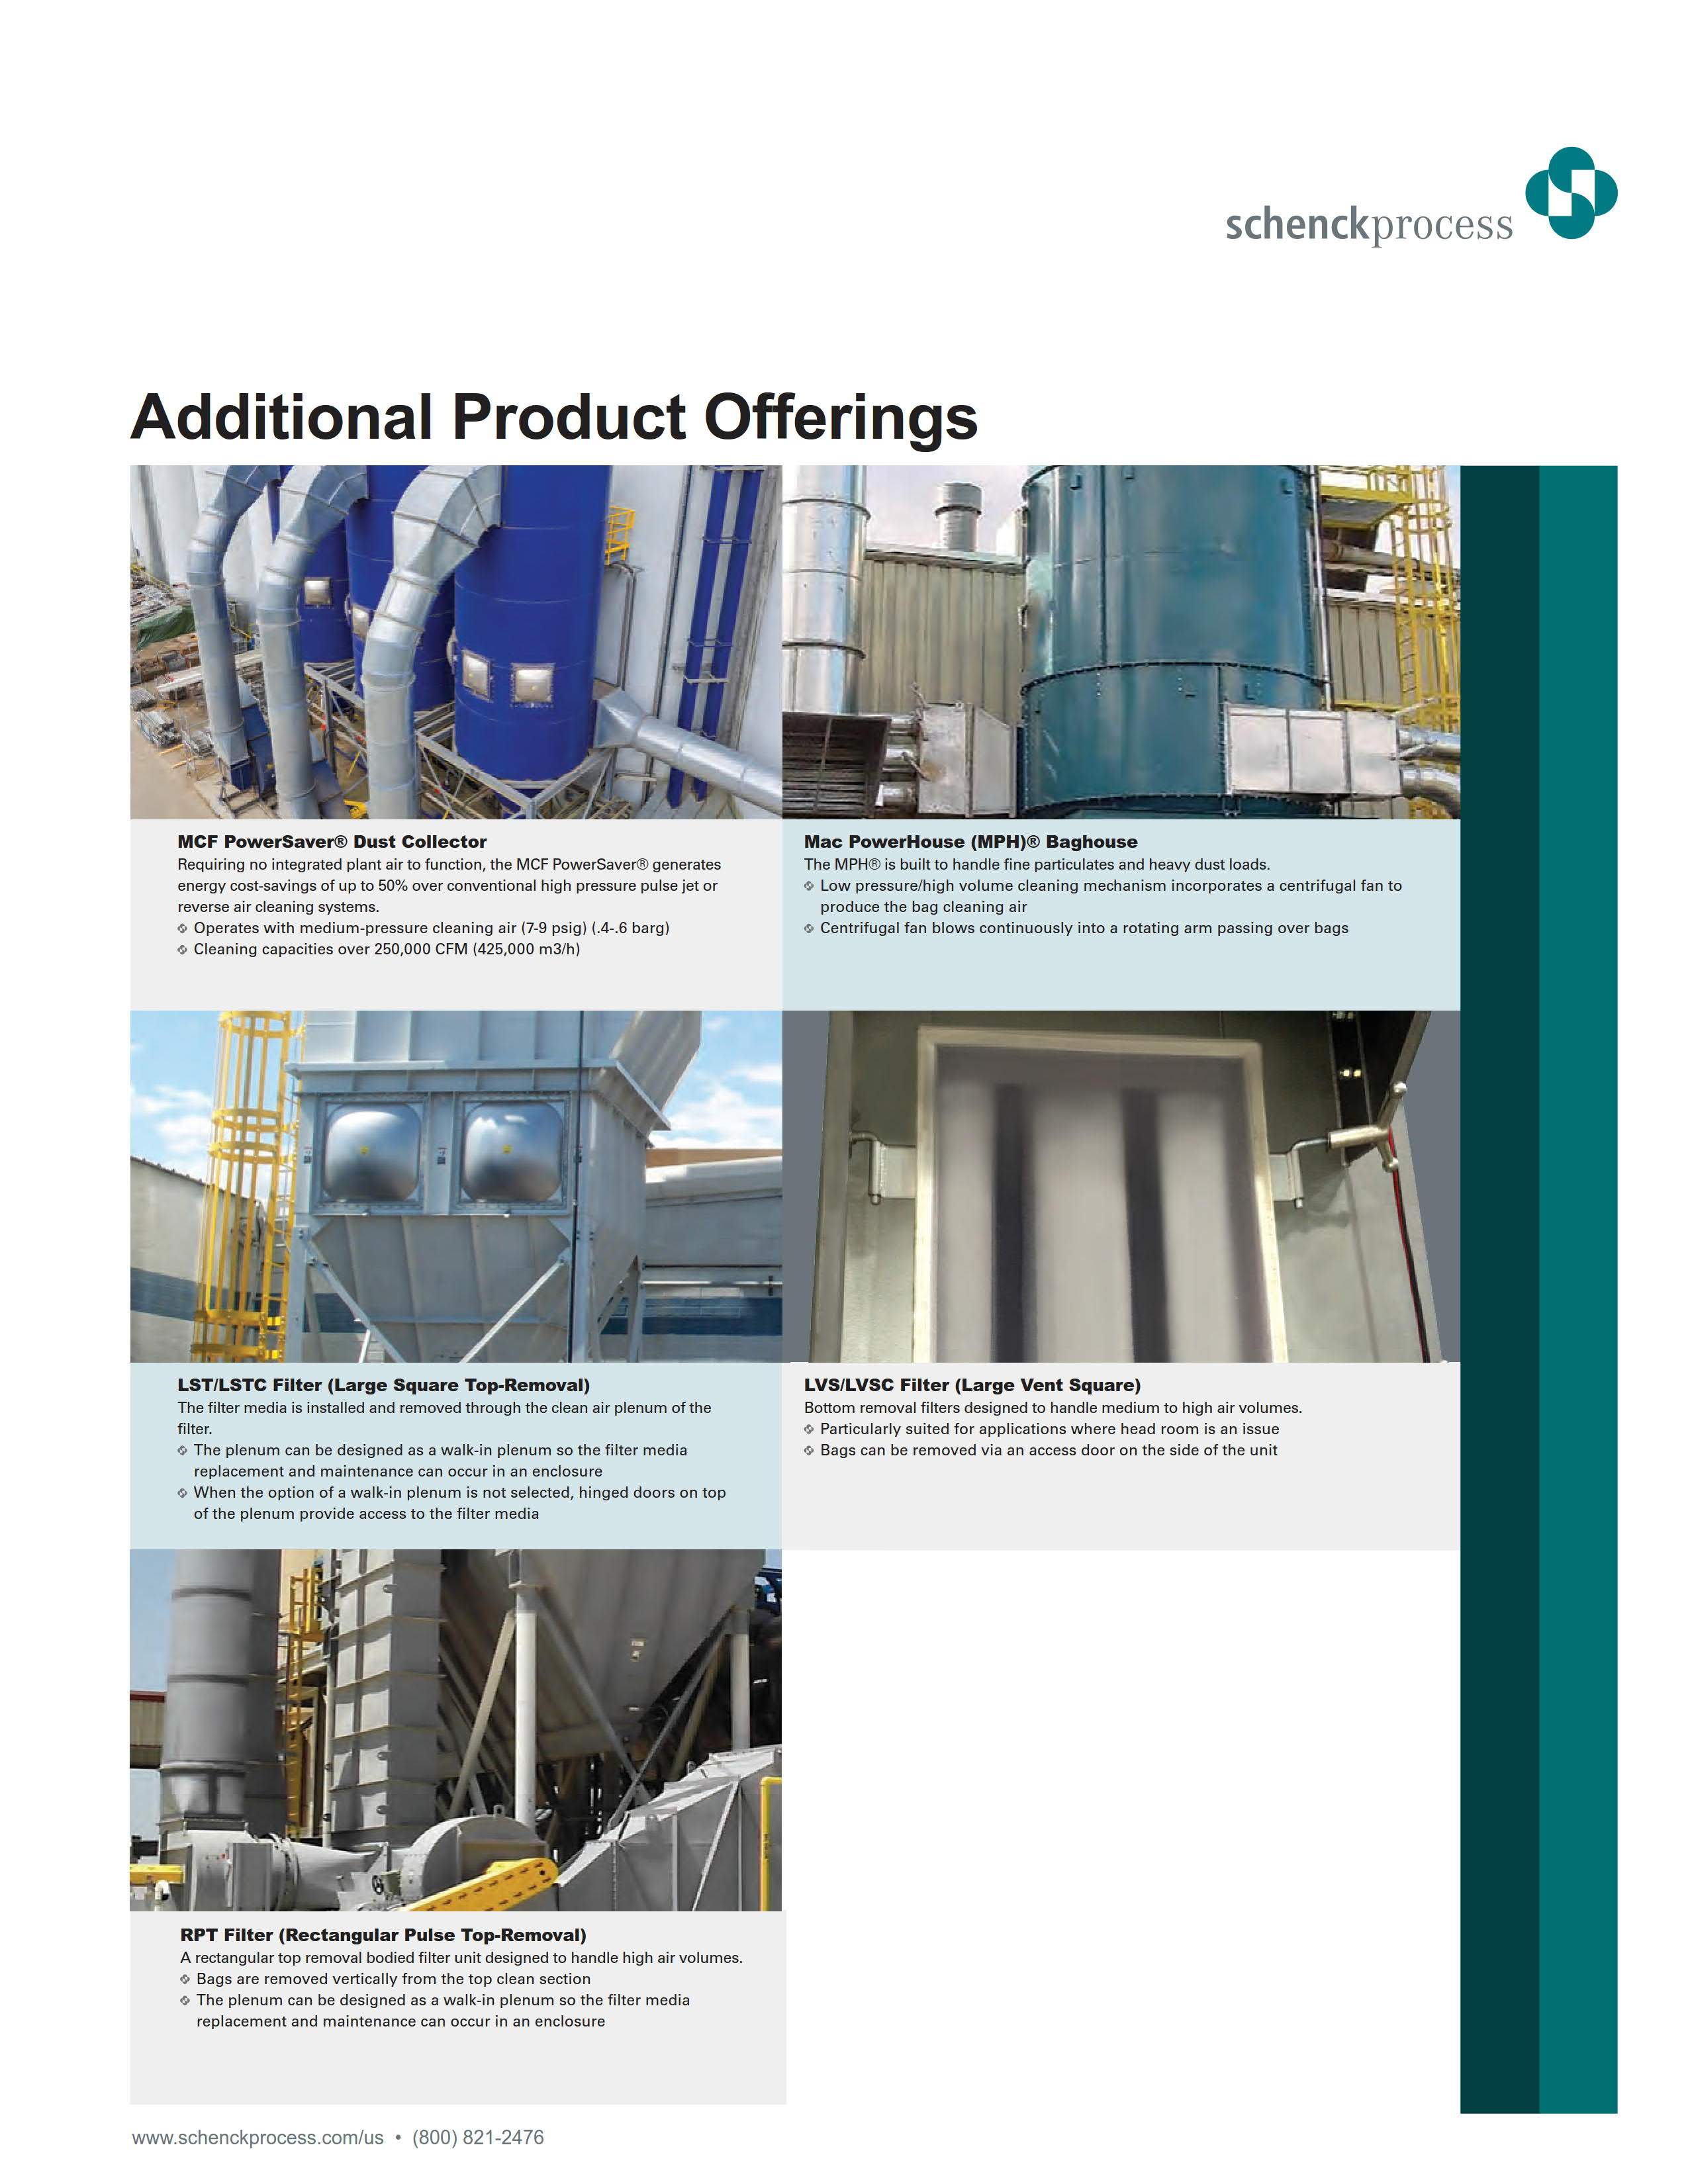 Additional Product Offerings - Filtration